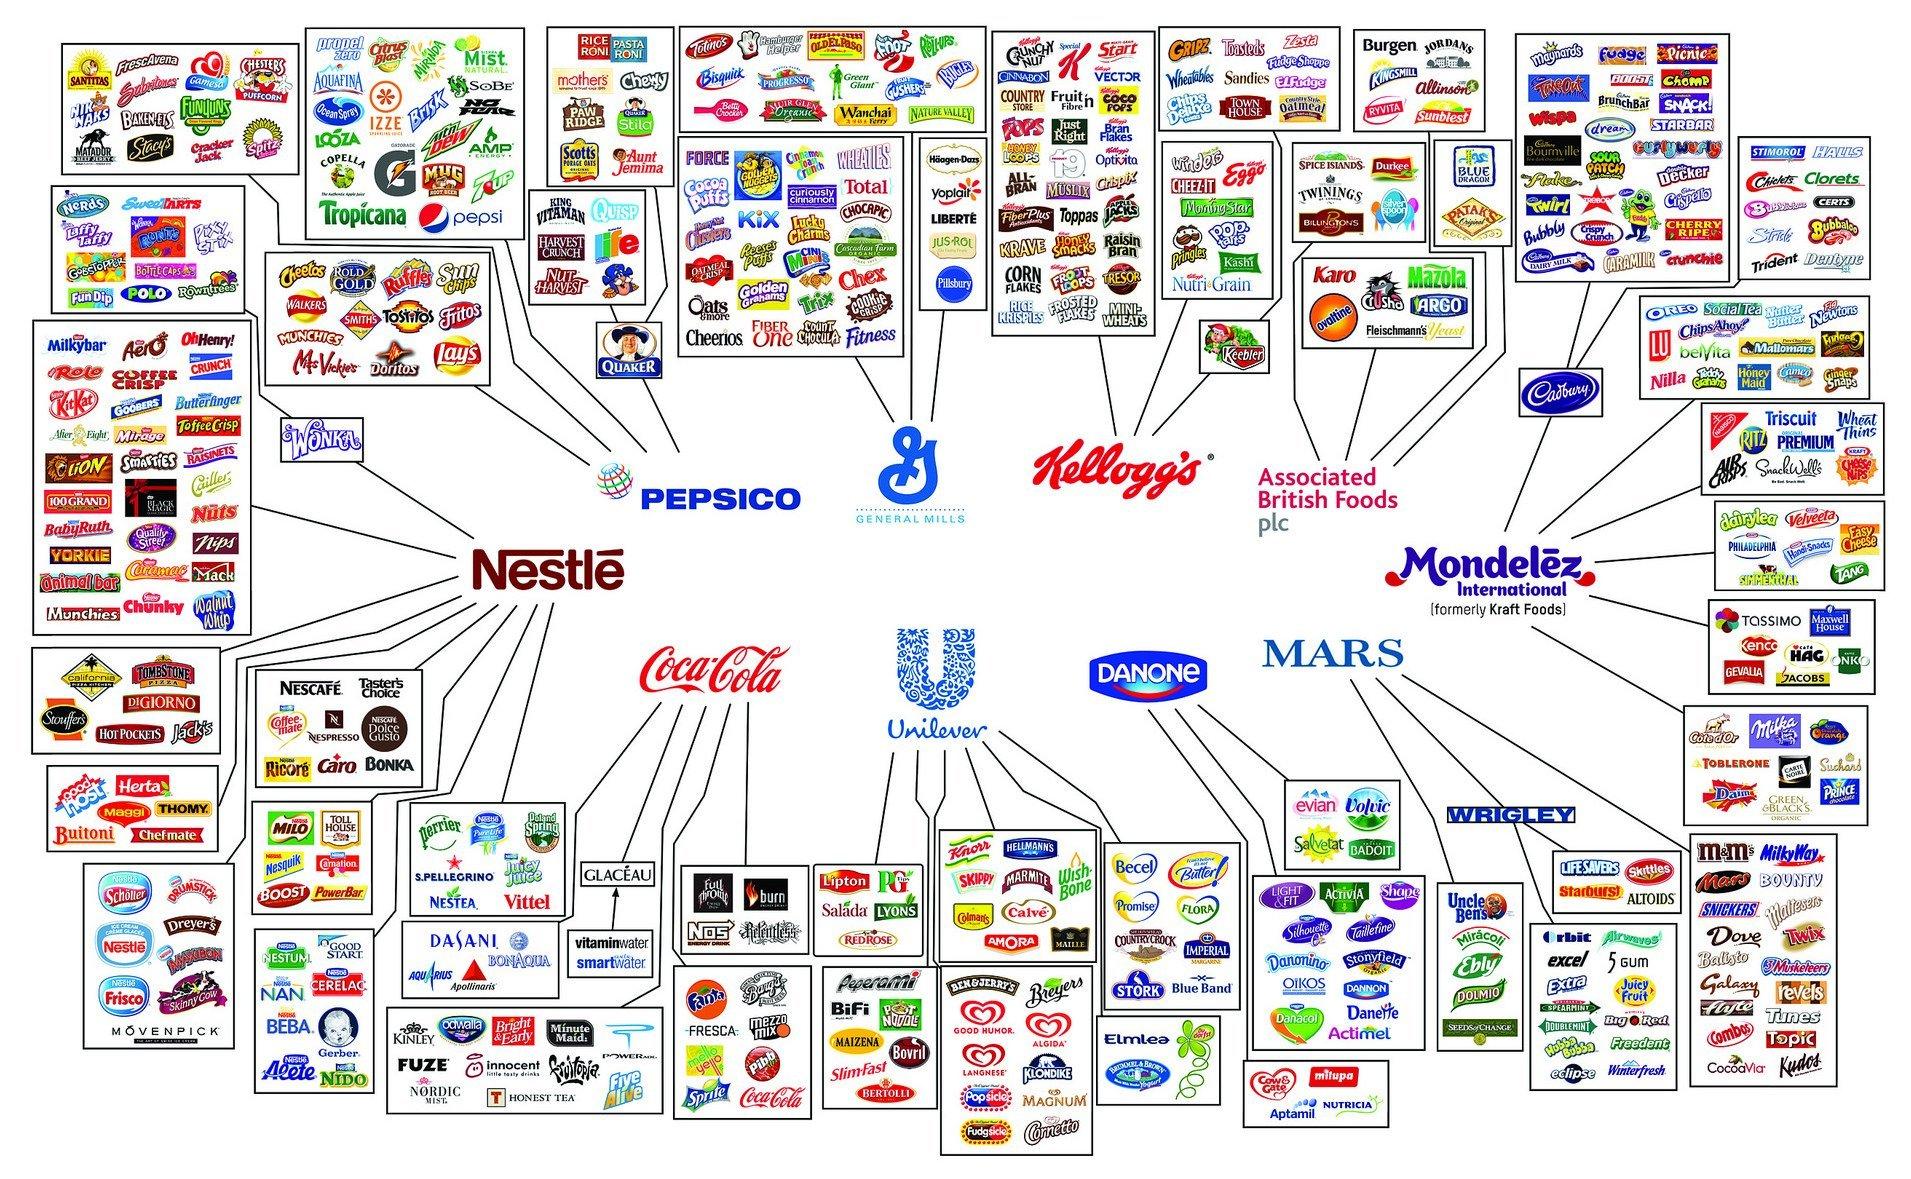 10 Companies That Are Controlling All The Consumer